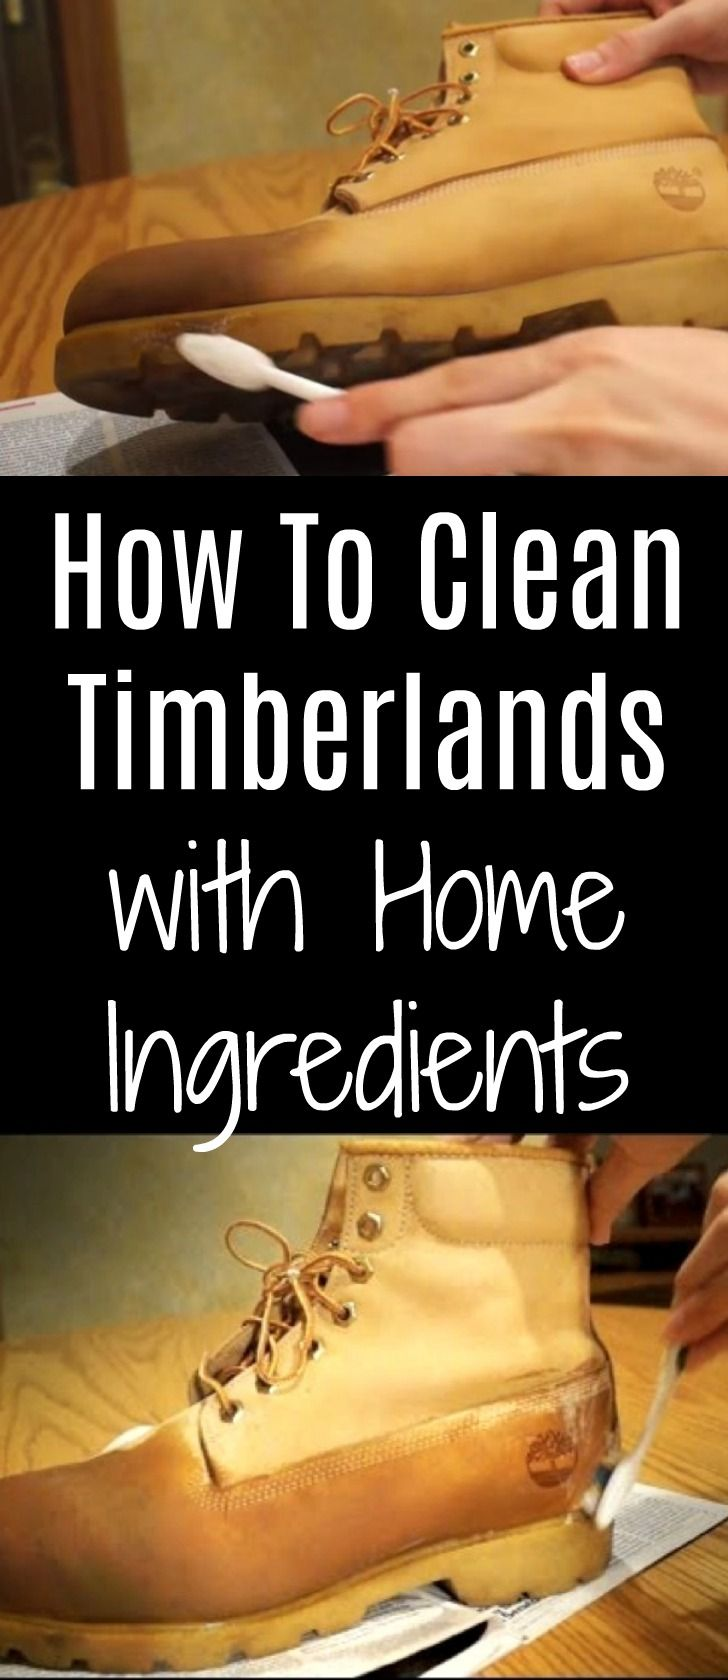 hot sale online cheaper factory outlets How To Clean Timberlands With Home Ingredients | How to ...